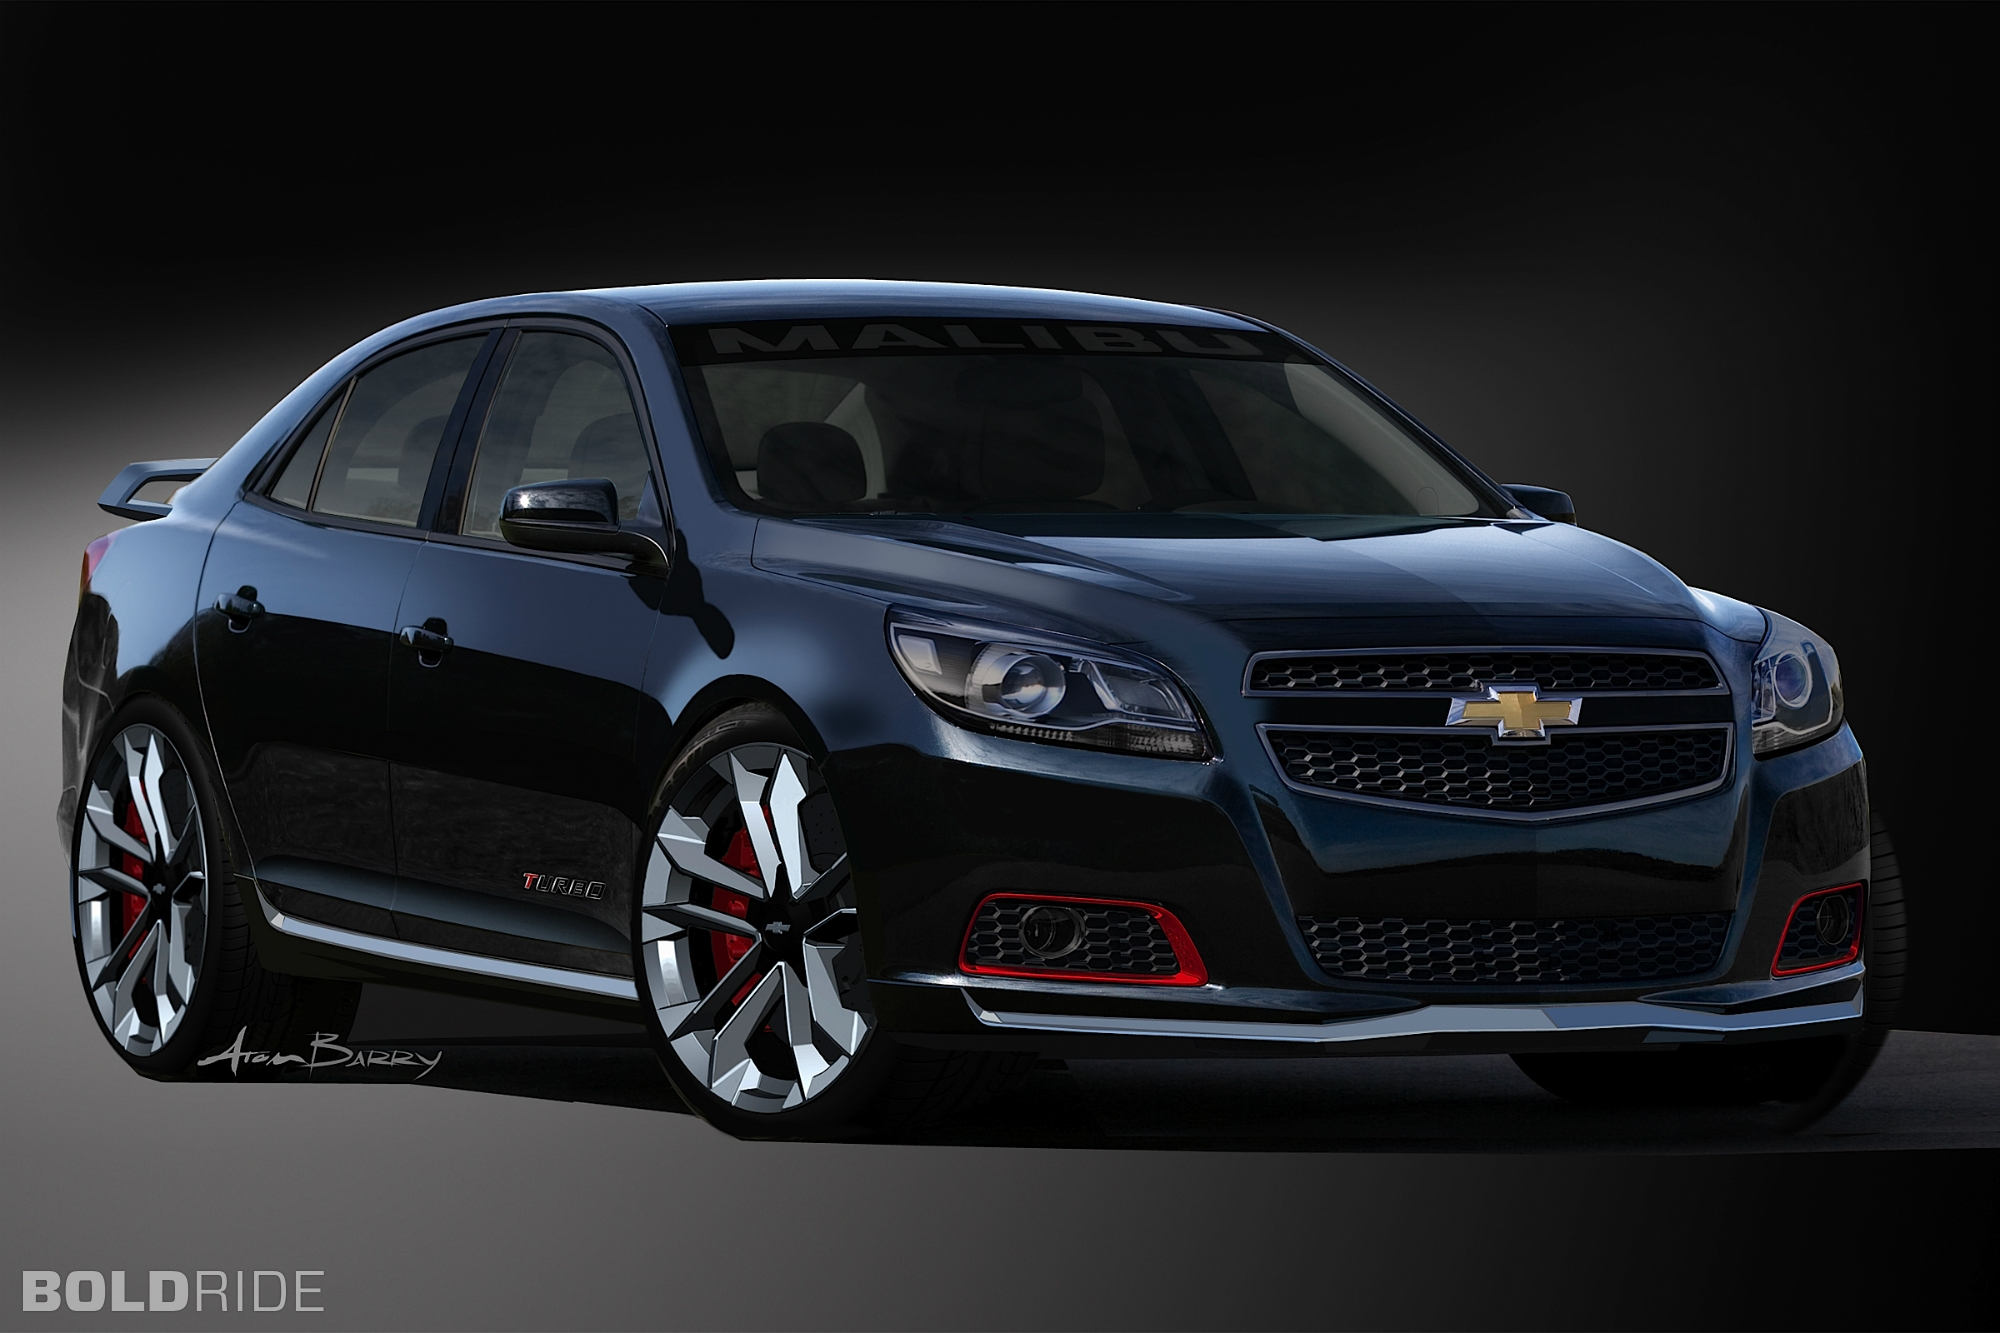 2012 Chevrolet Malibu VIN Number Search - AutoDetective